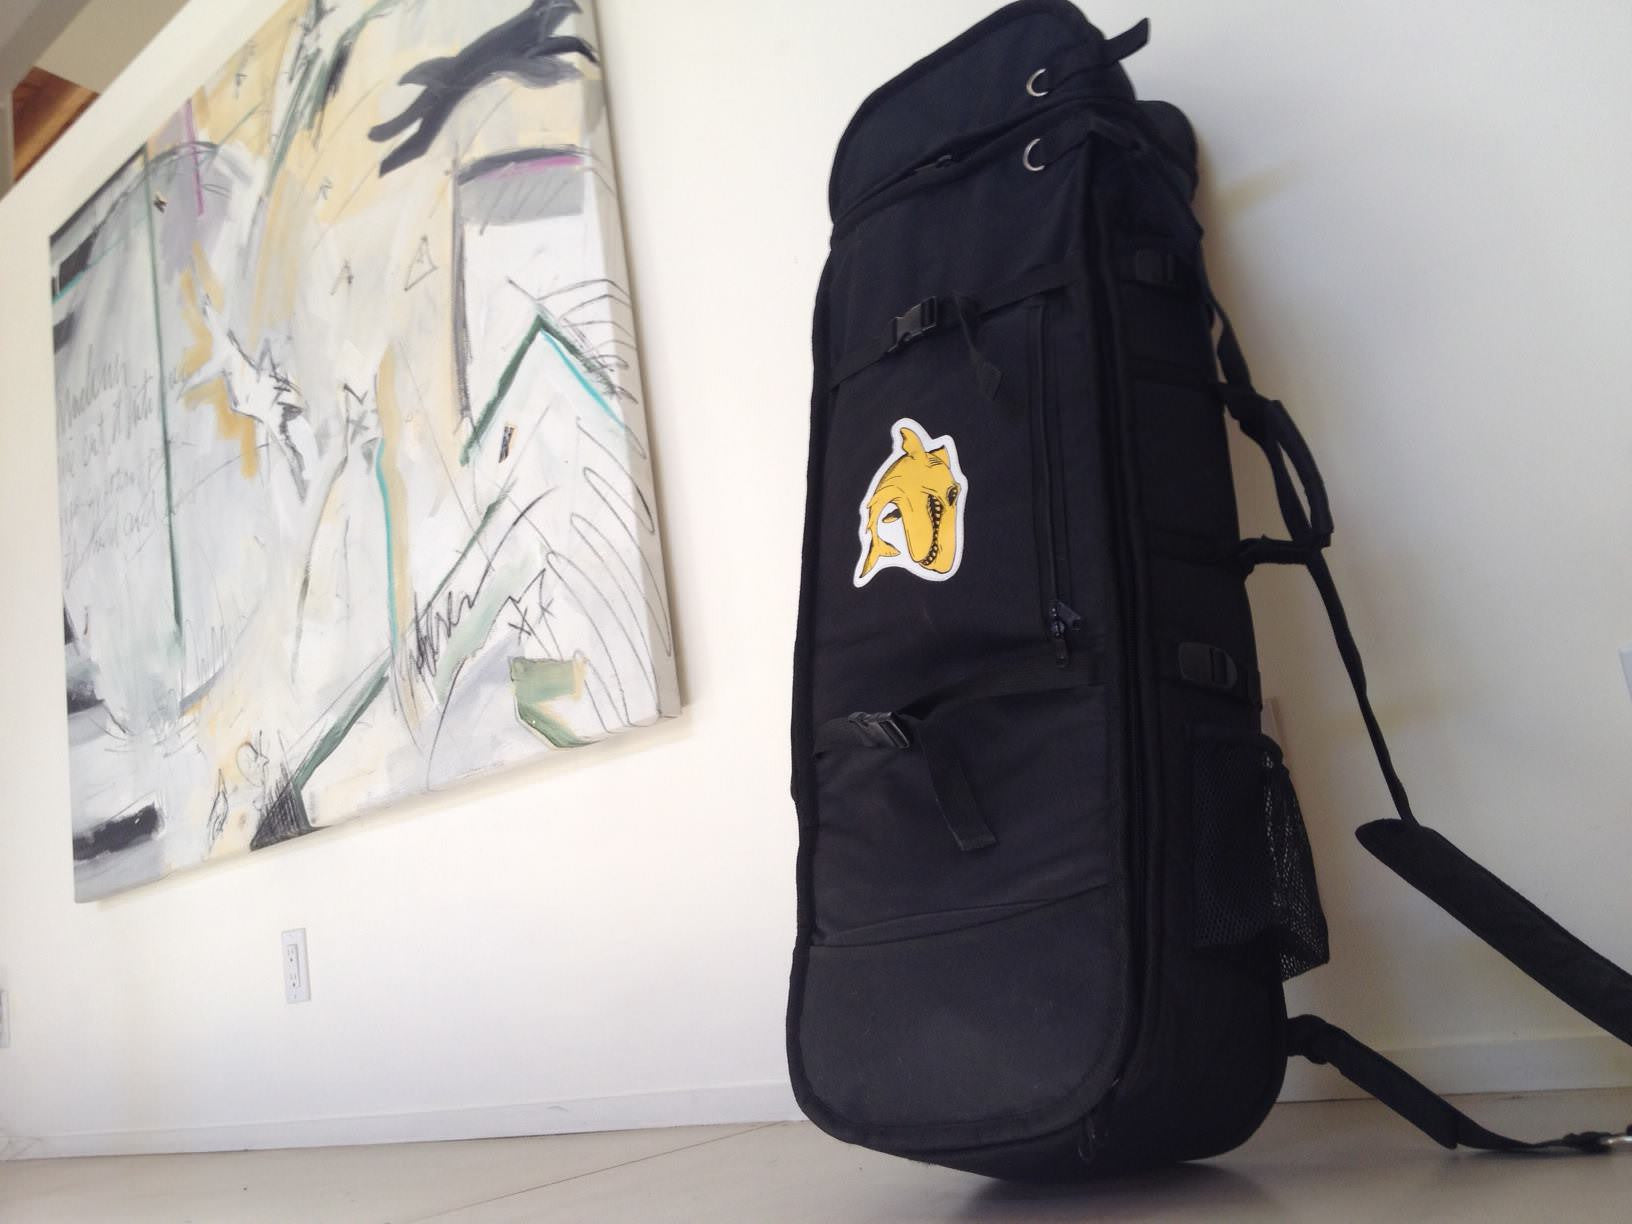 Travel friendly with a slightly larger skate bag